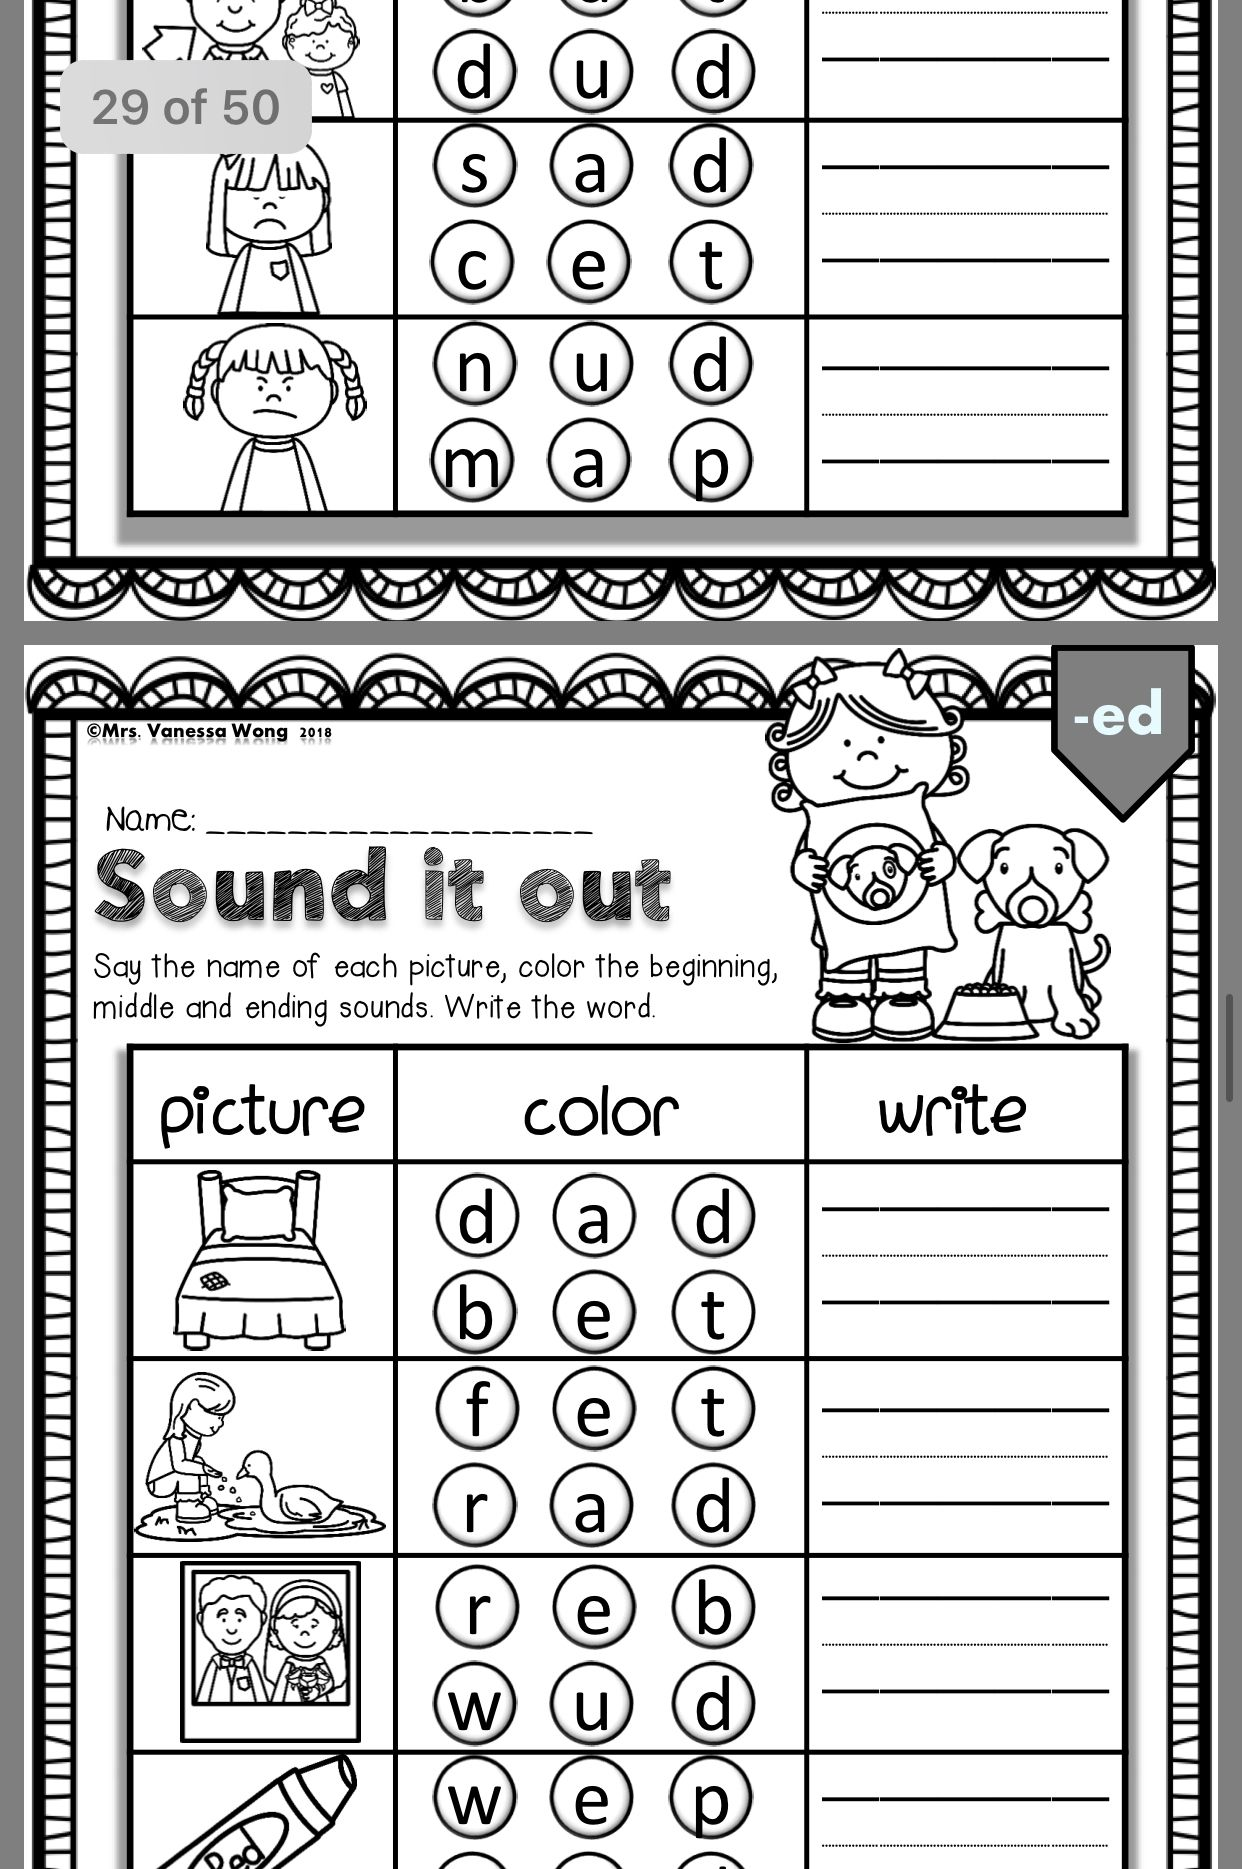 Pin By Jill Lemasters On School | Kindergarten, School, Word